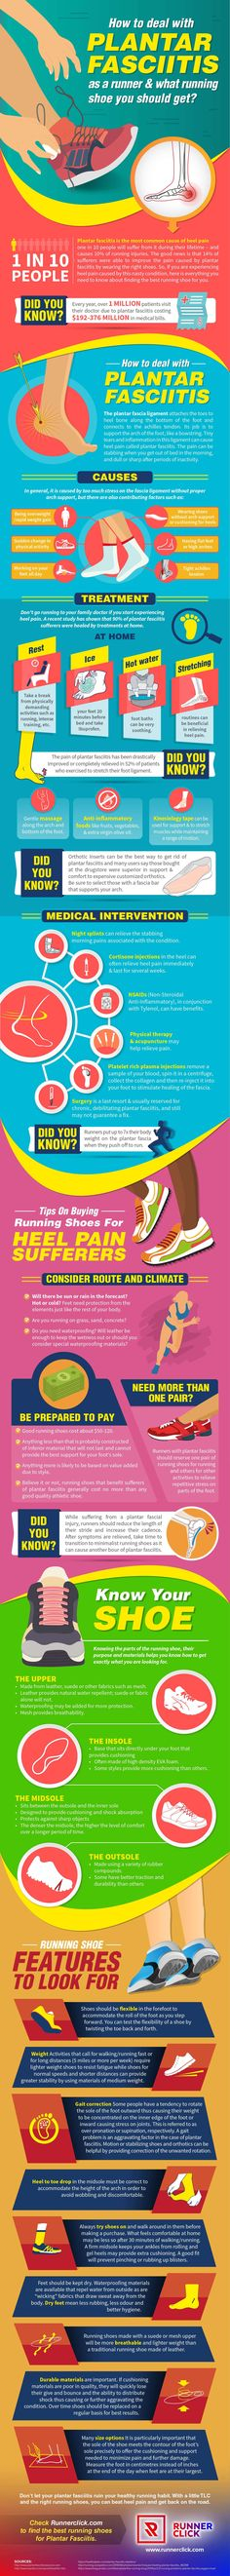 The Complete Guide to Finding The Right Running Shoes For Plantar Fasciitis